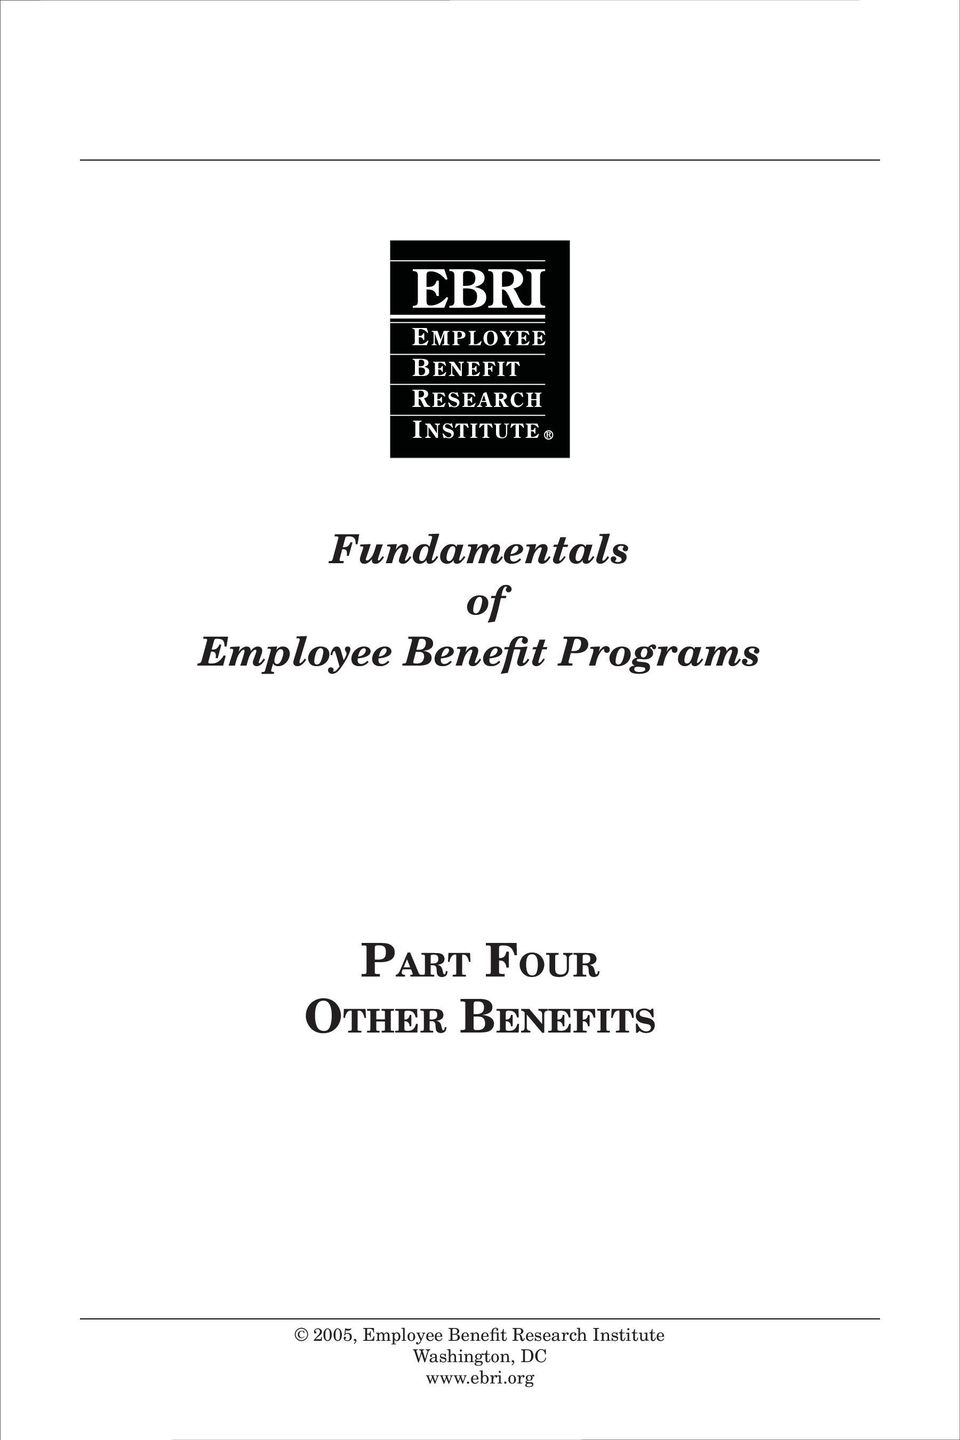 2005, Employee Benefit Research